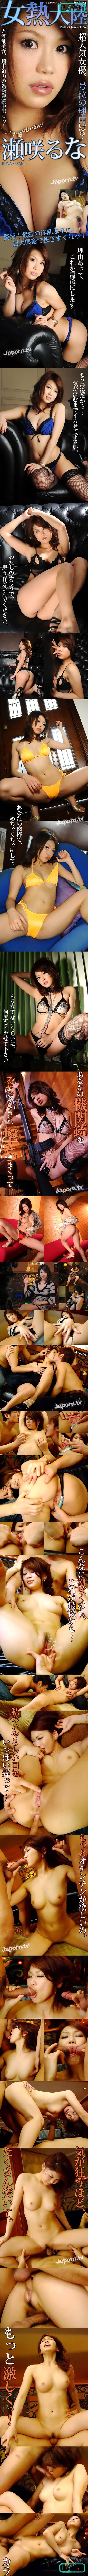 [RHJ 157] Red Hot Jam Vol. 157   Sezaki Runa レッドホットジャム Sezaki Runa RHJ Red Hot Jam